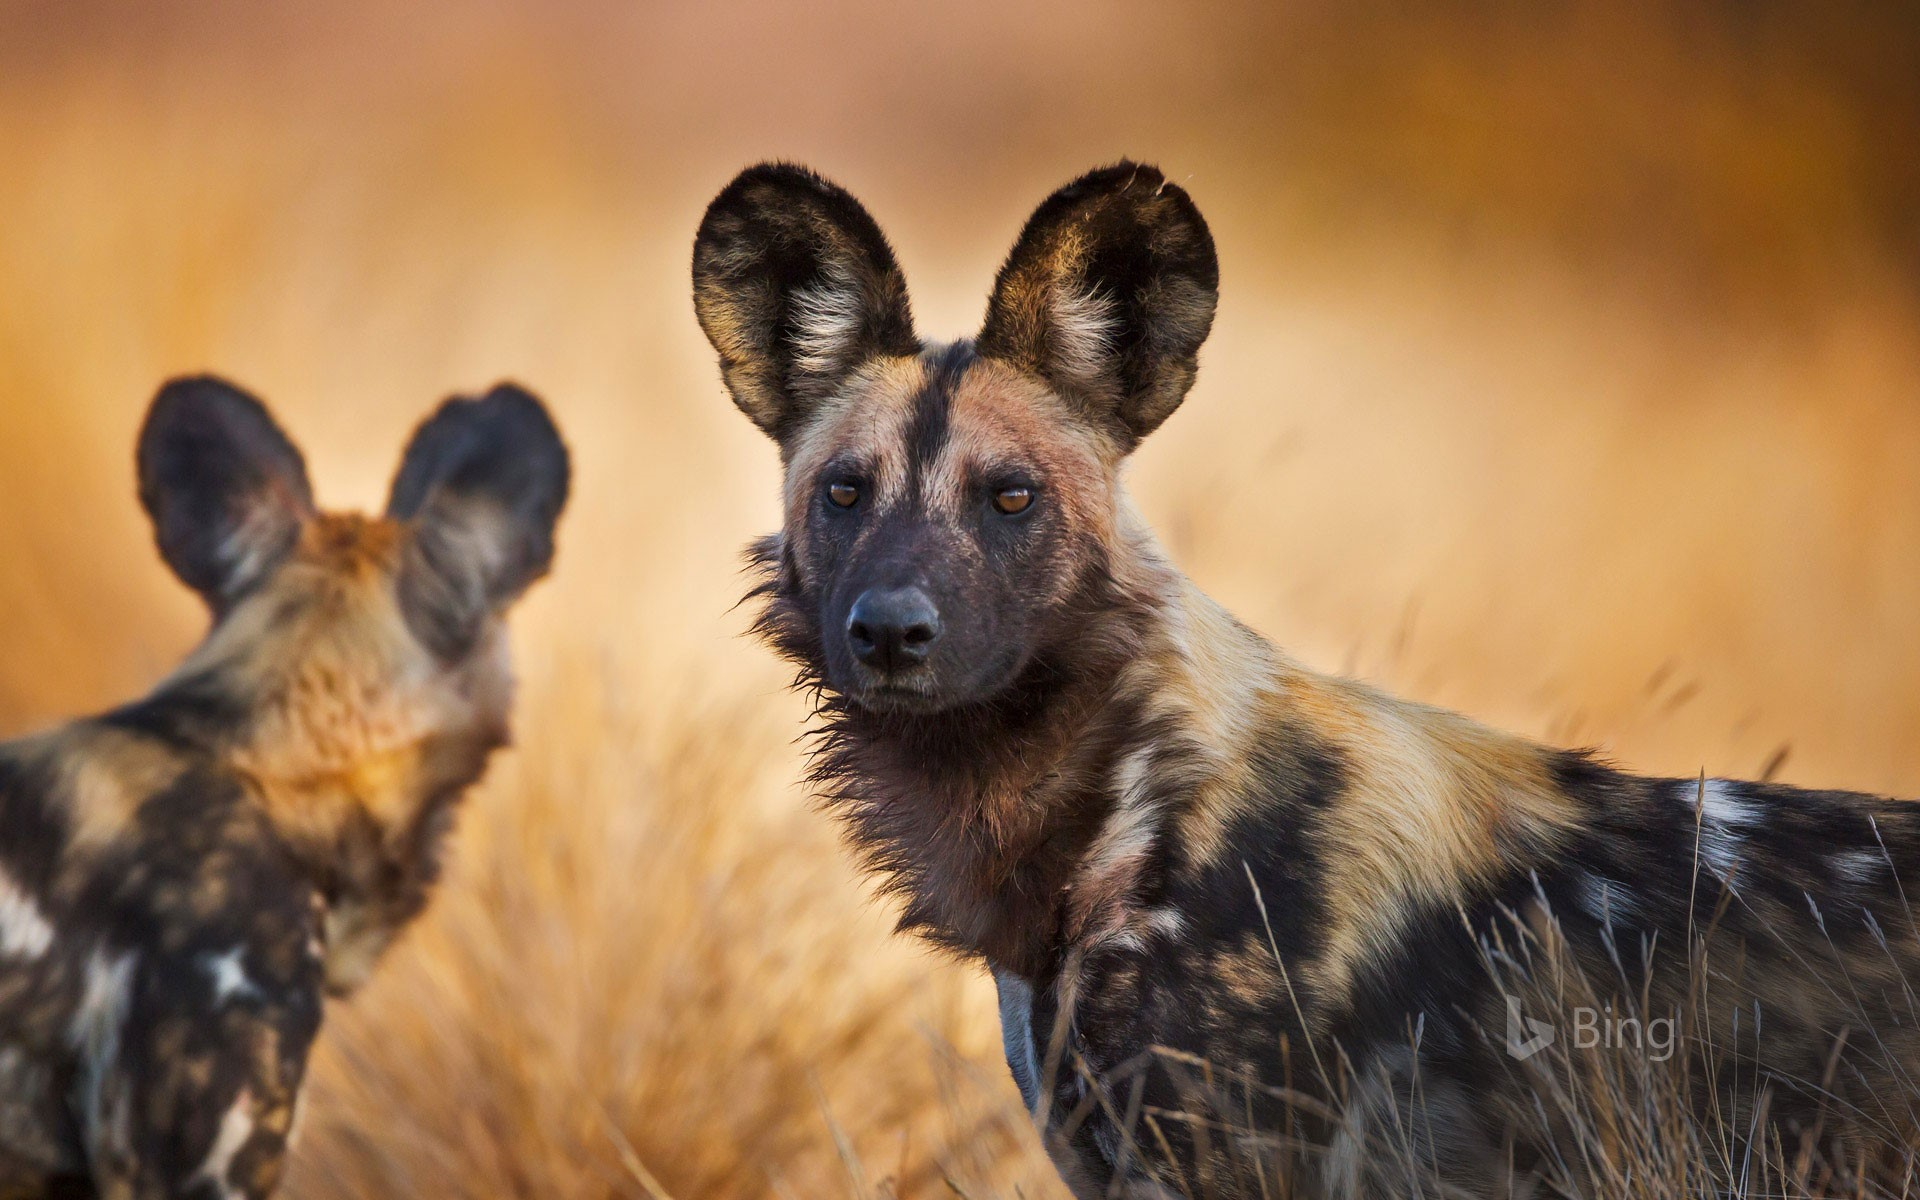 African wild dogs in Kruger National Park, South Africa